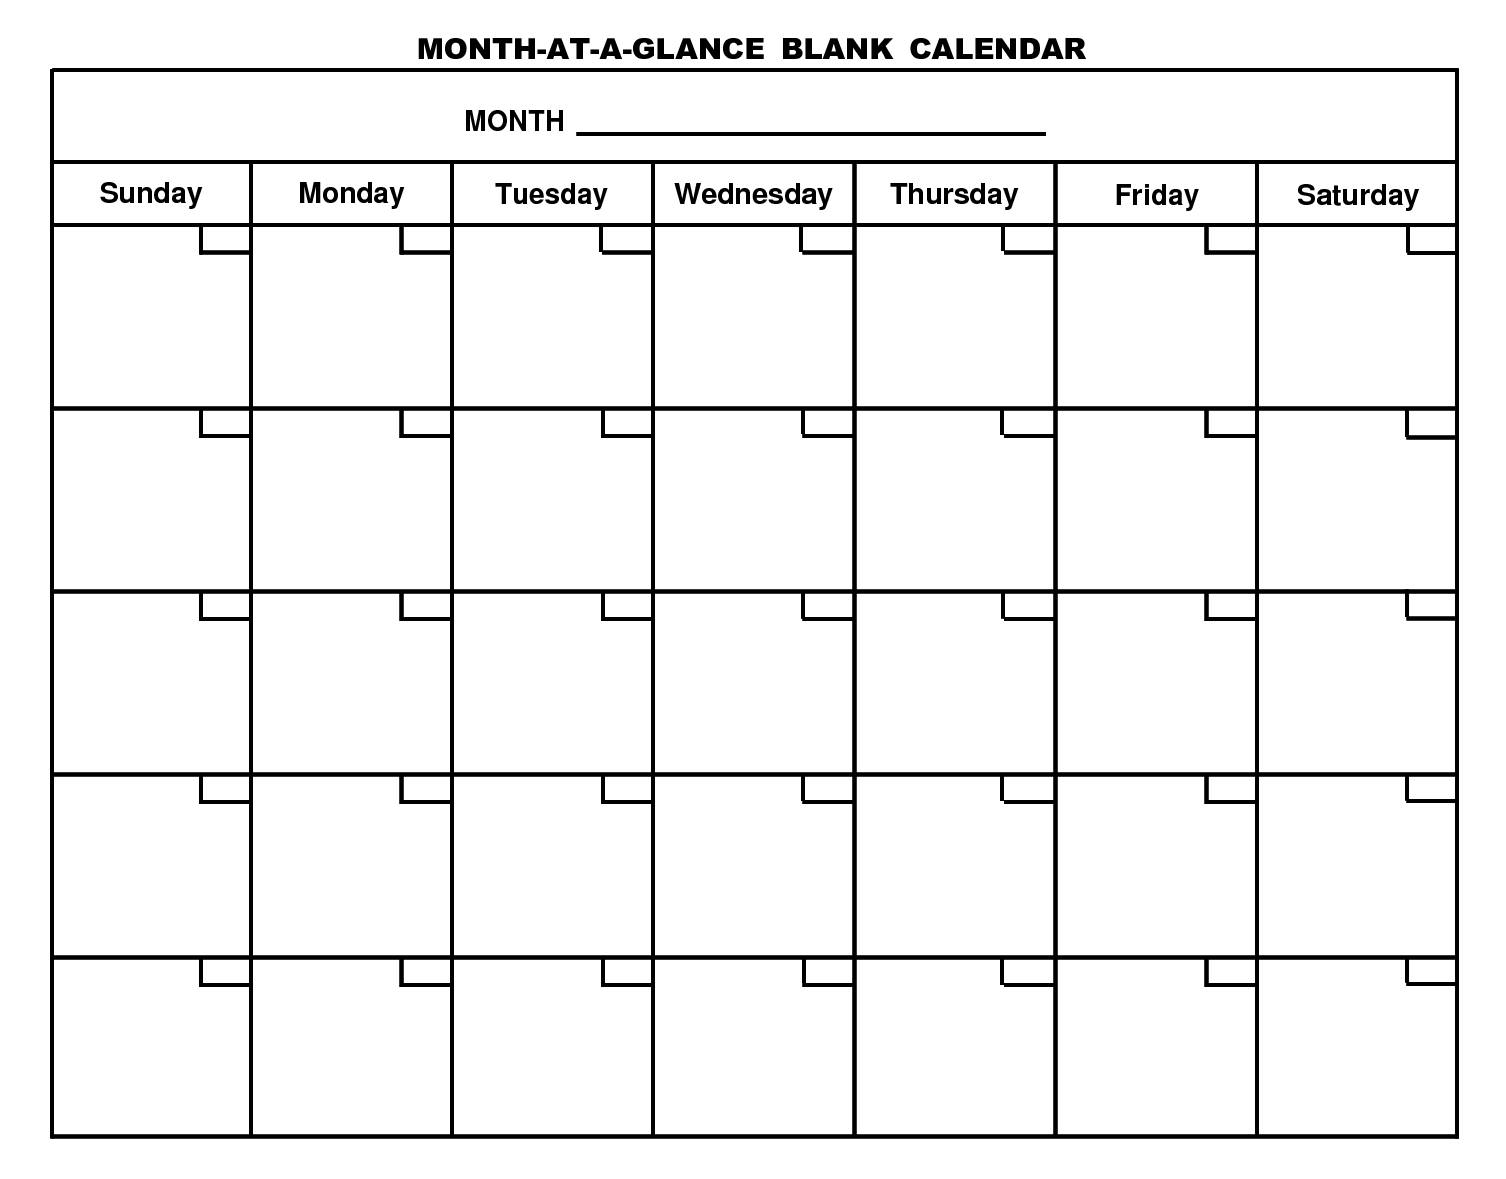 Pin By Stacy Tangren On Work | Printable Blank Calendar-Month At A Glance Blank Calendar